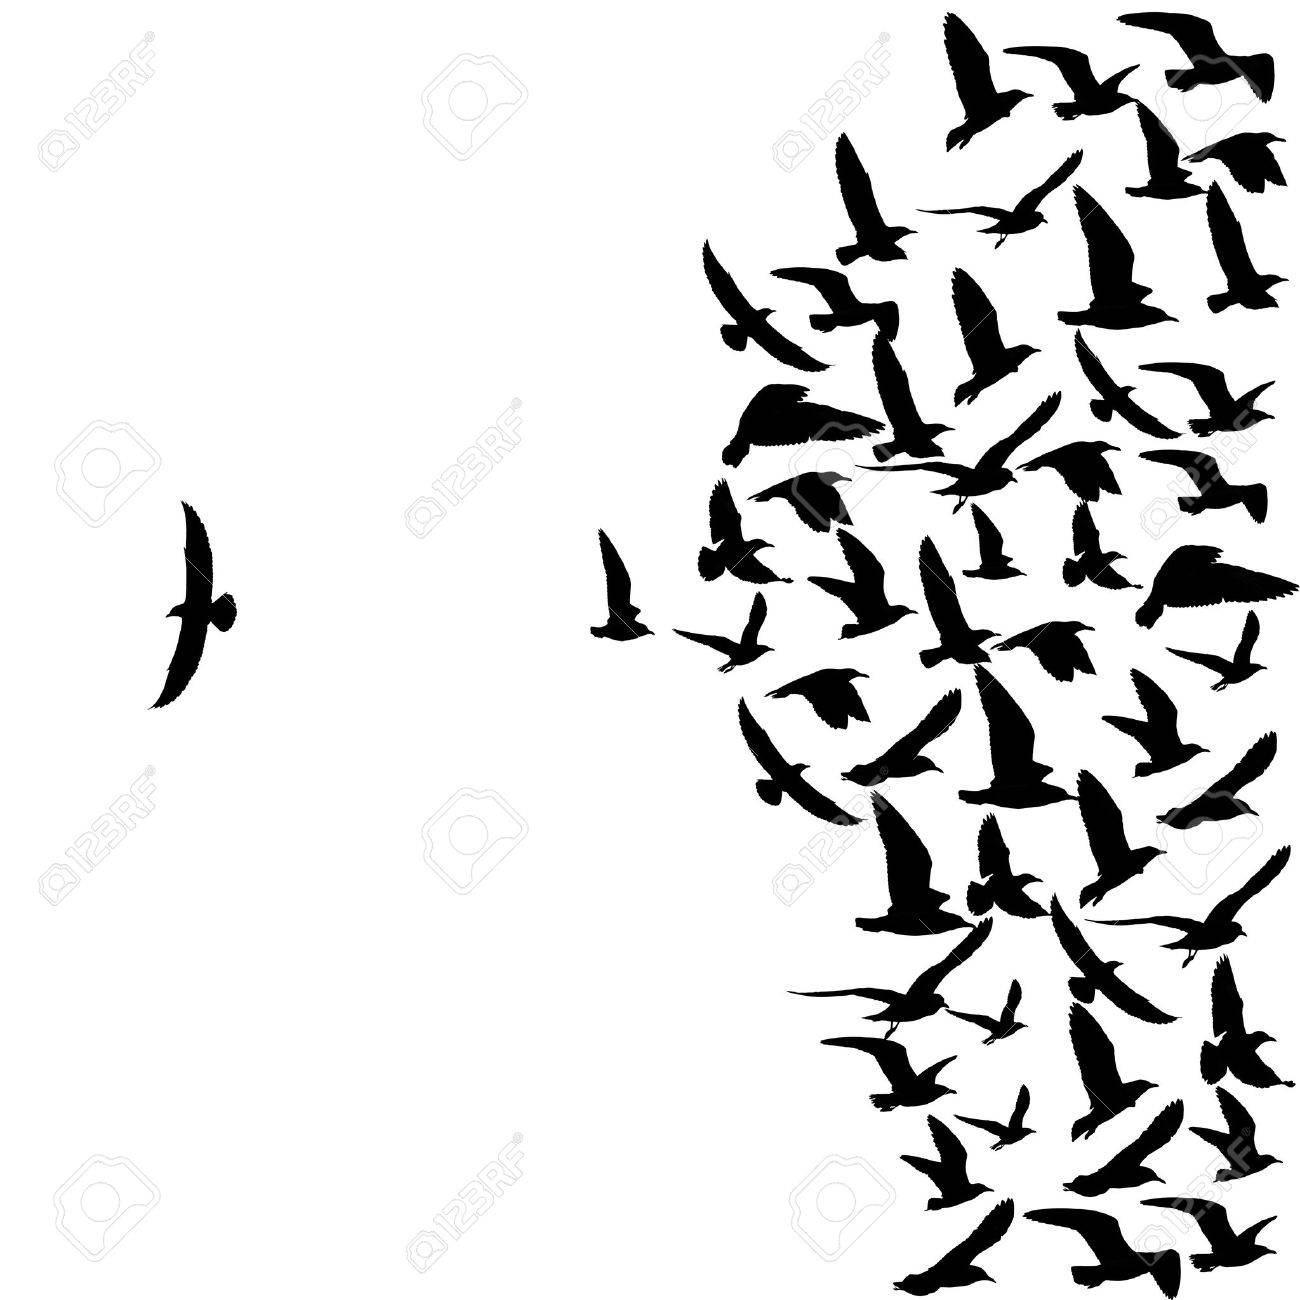 silhouette group of flying seagull birds with one individual bird going in the opposite direction white background. - 44867123